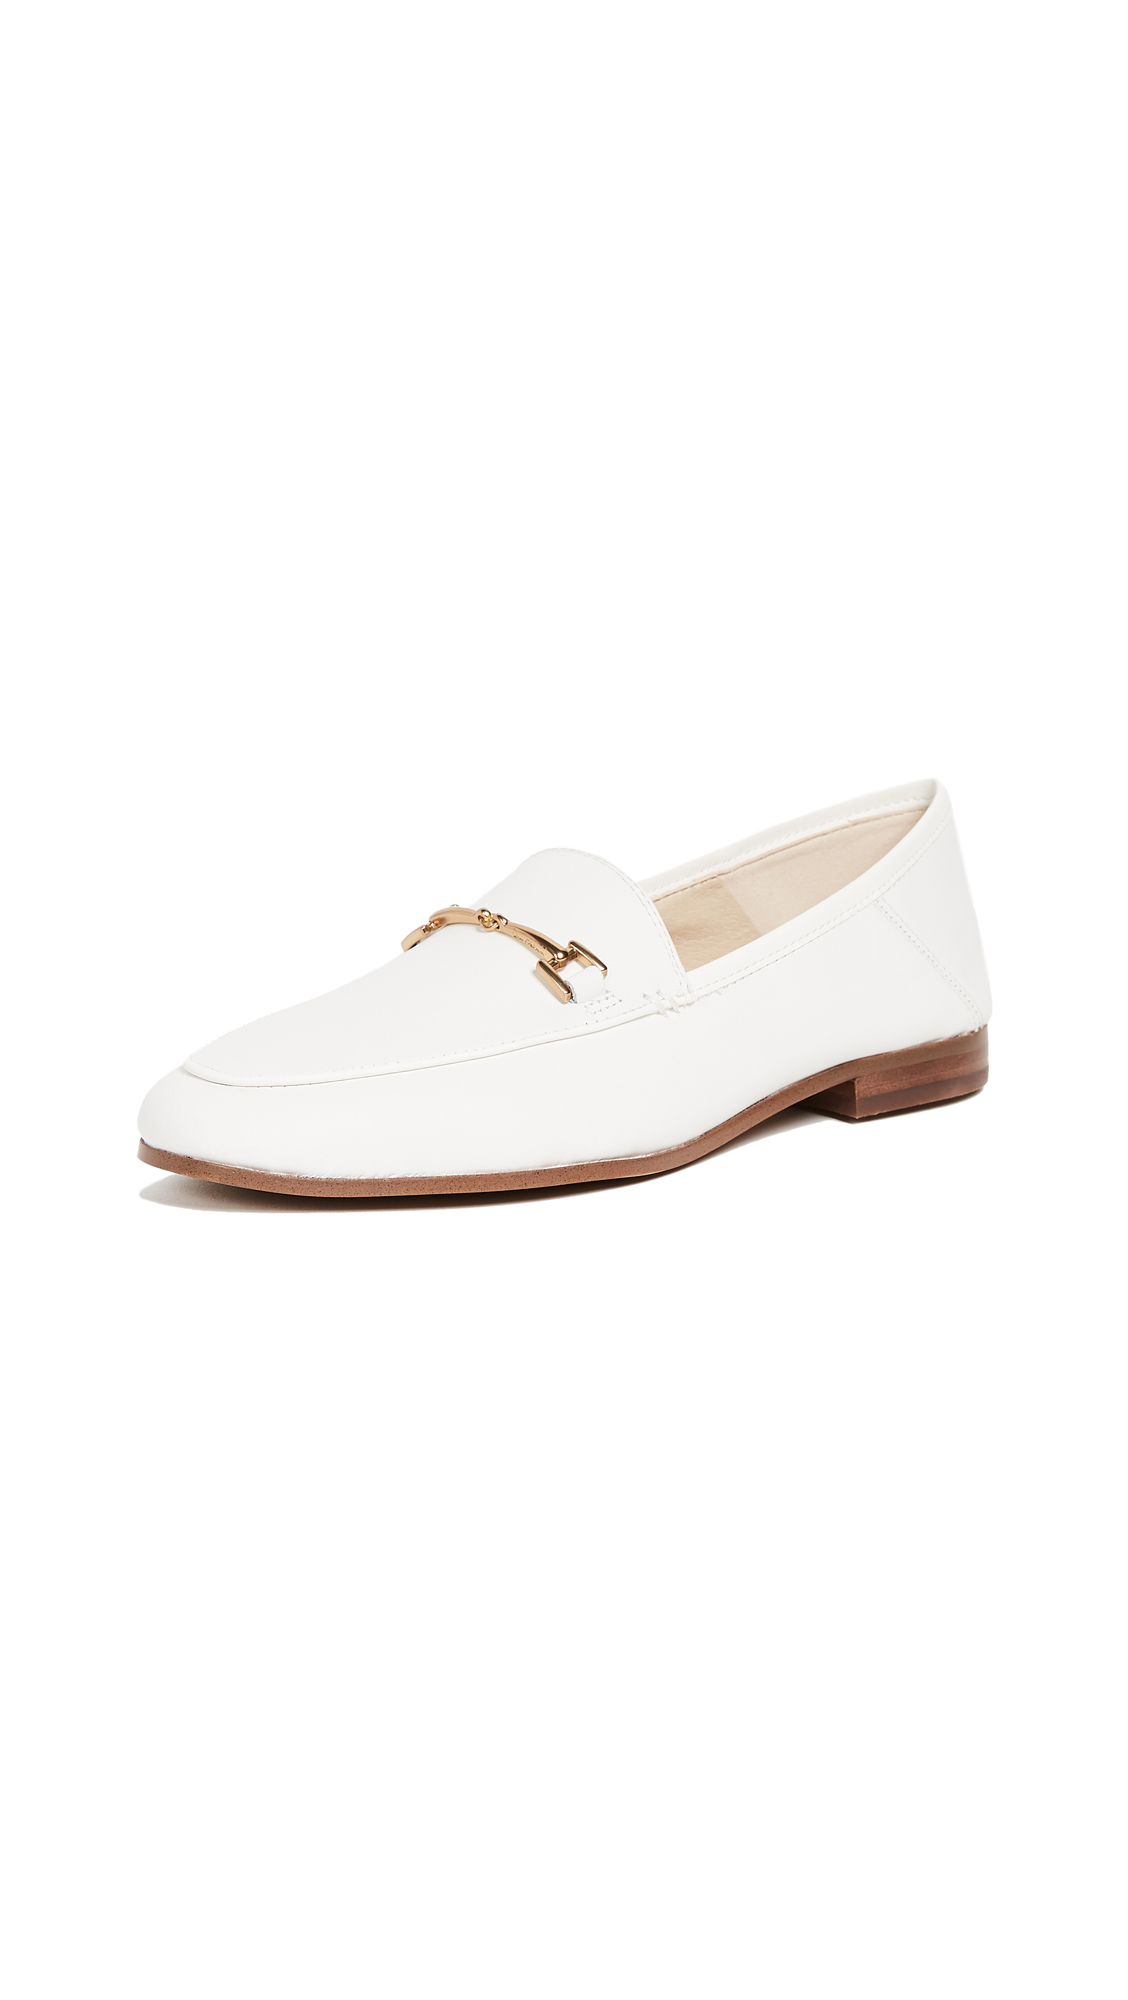 Sam Edelman Loraine Loafers - Bright White